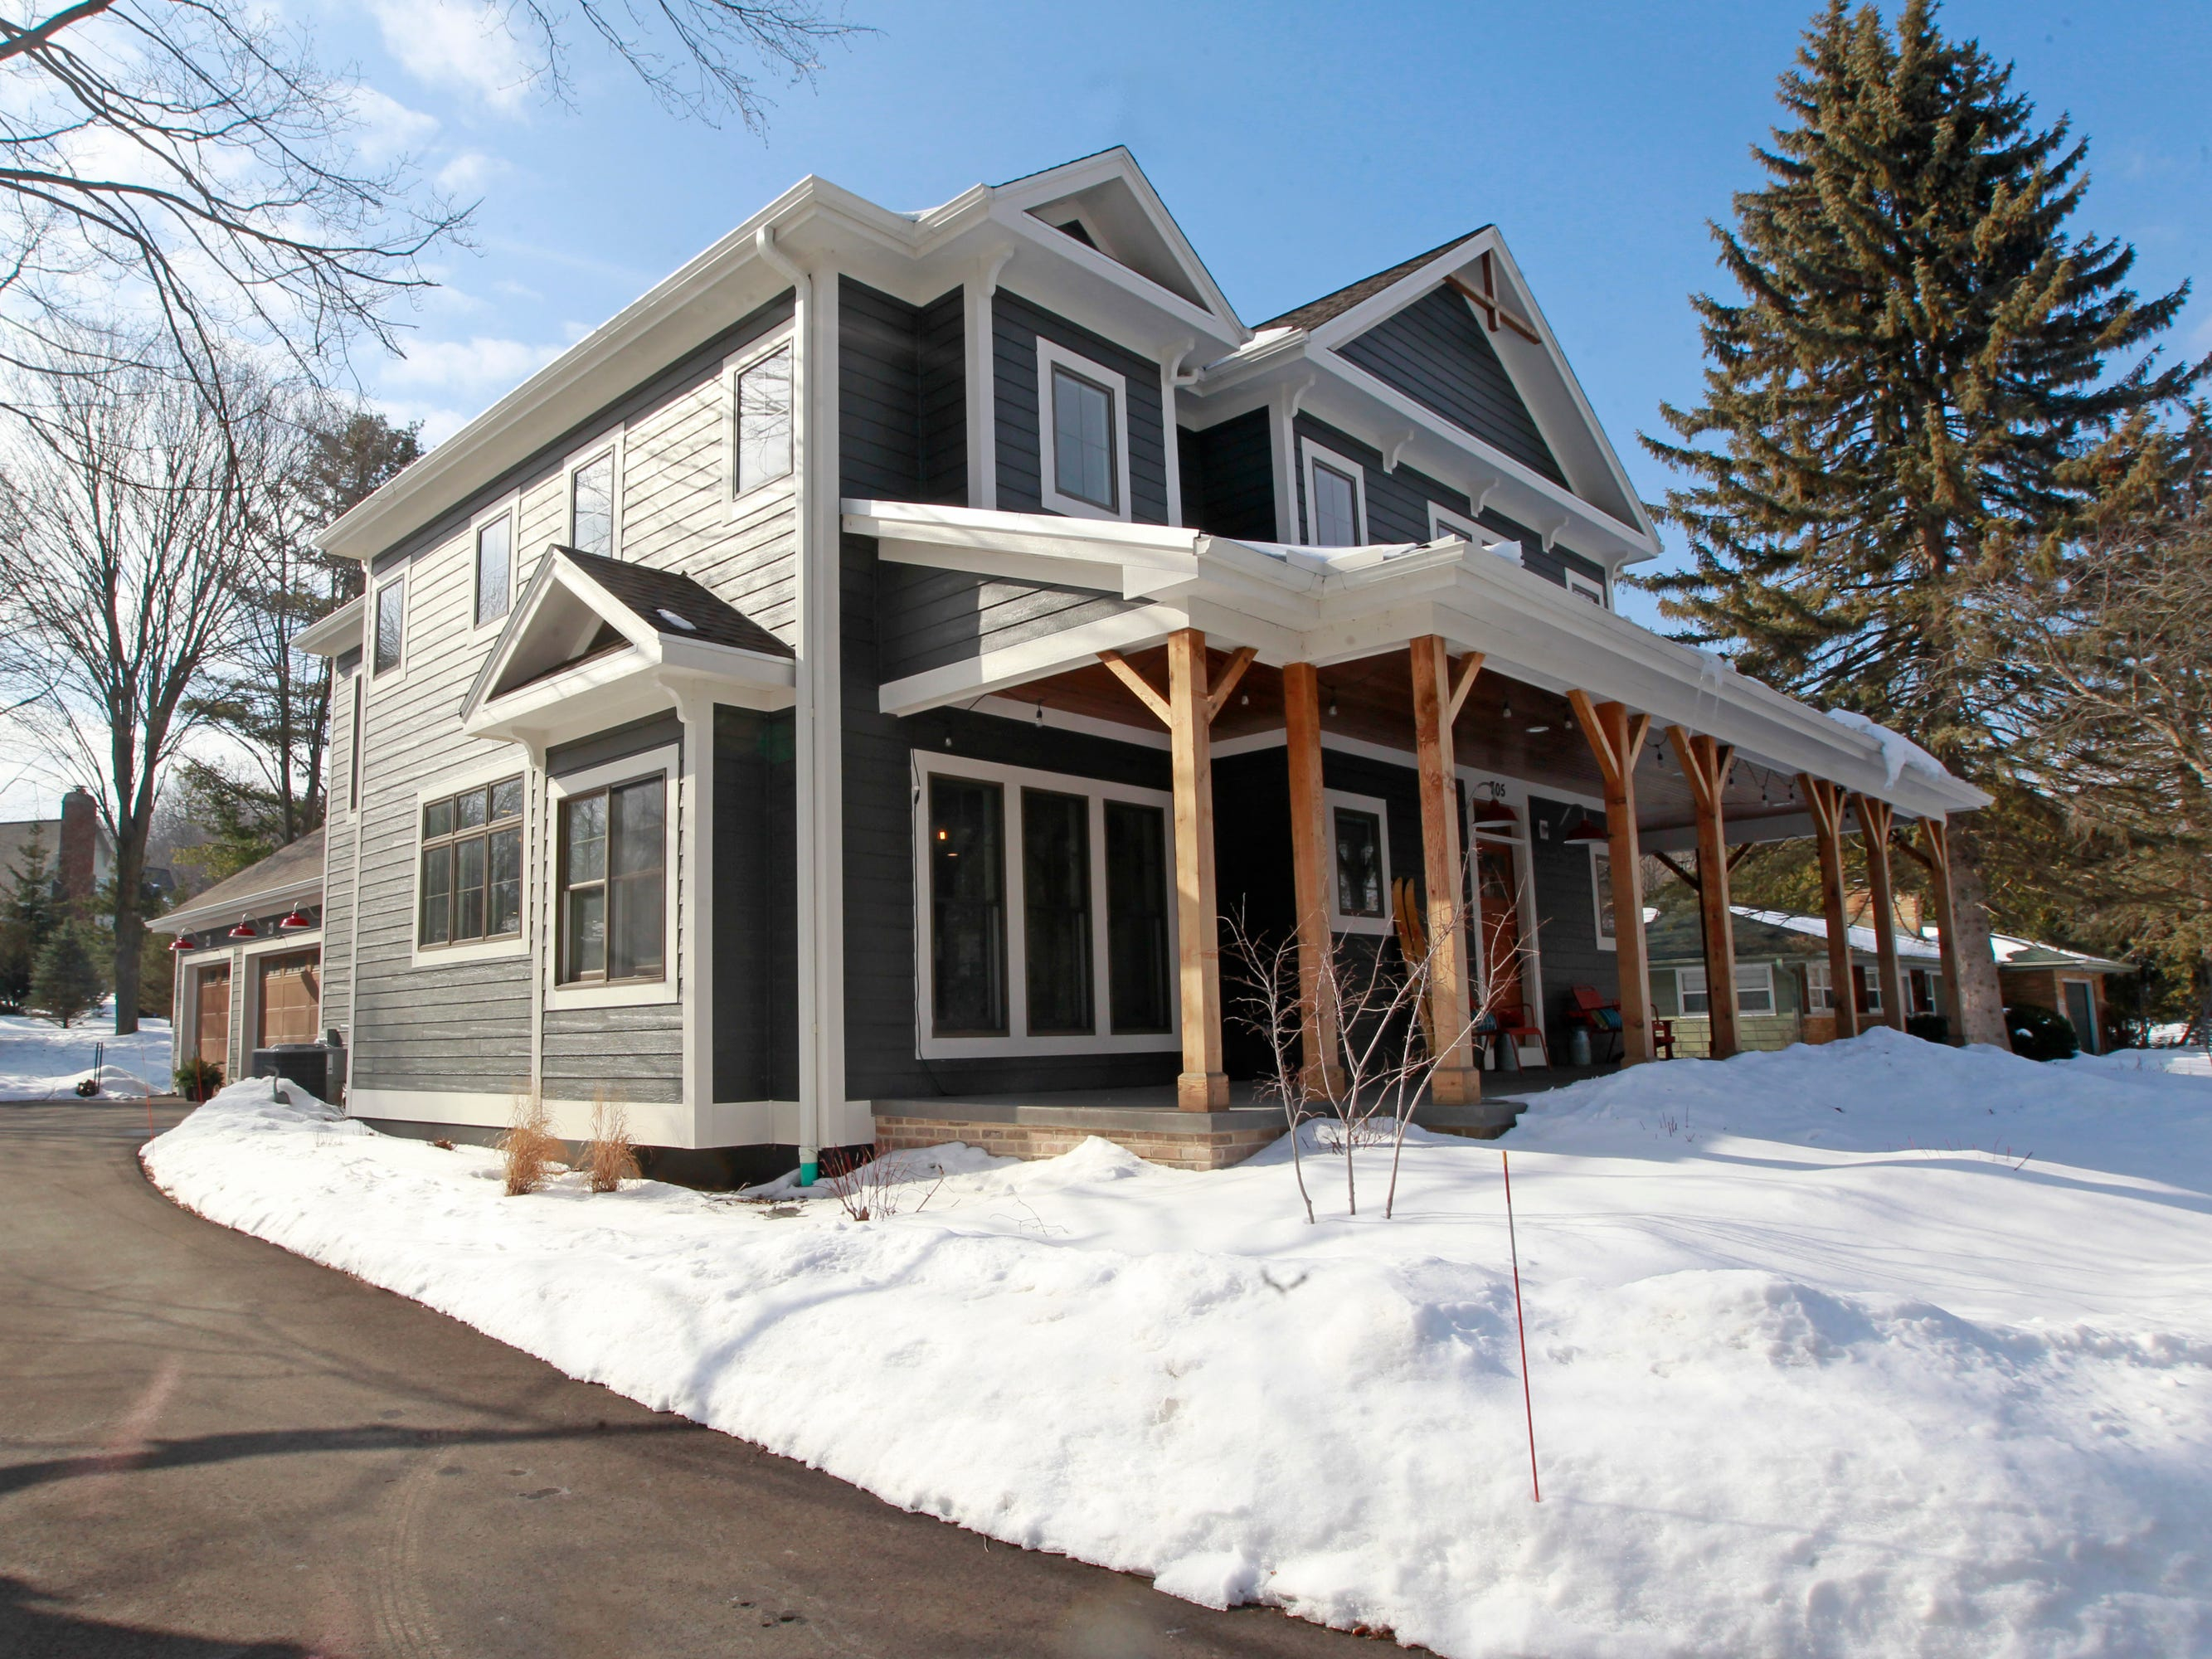 Laura and Kurt Goranson wanted to keep the charm of a farmhouse when they built their two-story house in Elm Grove in 2017. It has a little over 3,000 square feet, with three bedrooms and 3 ½ baths.